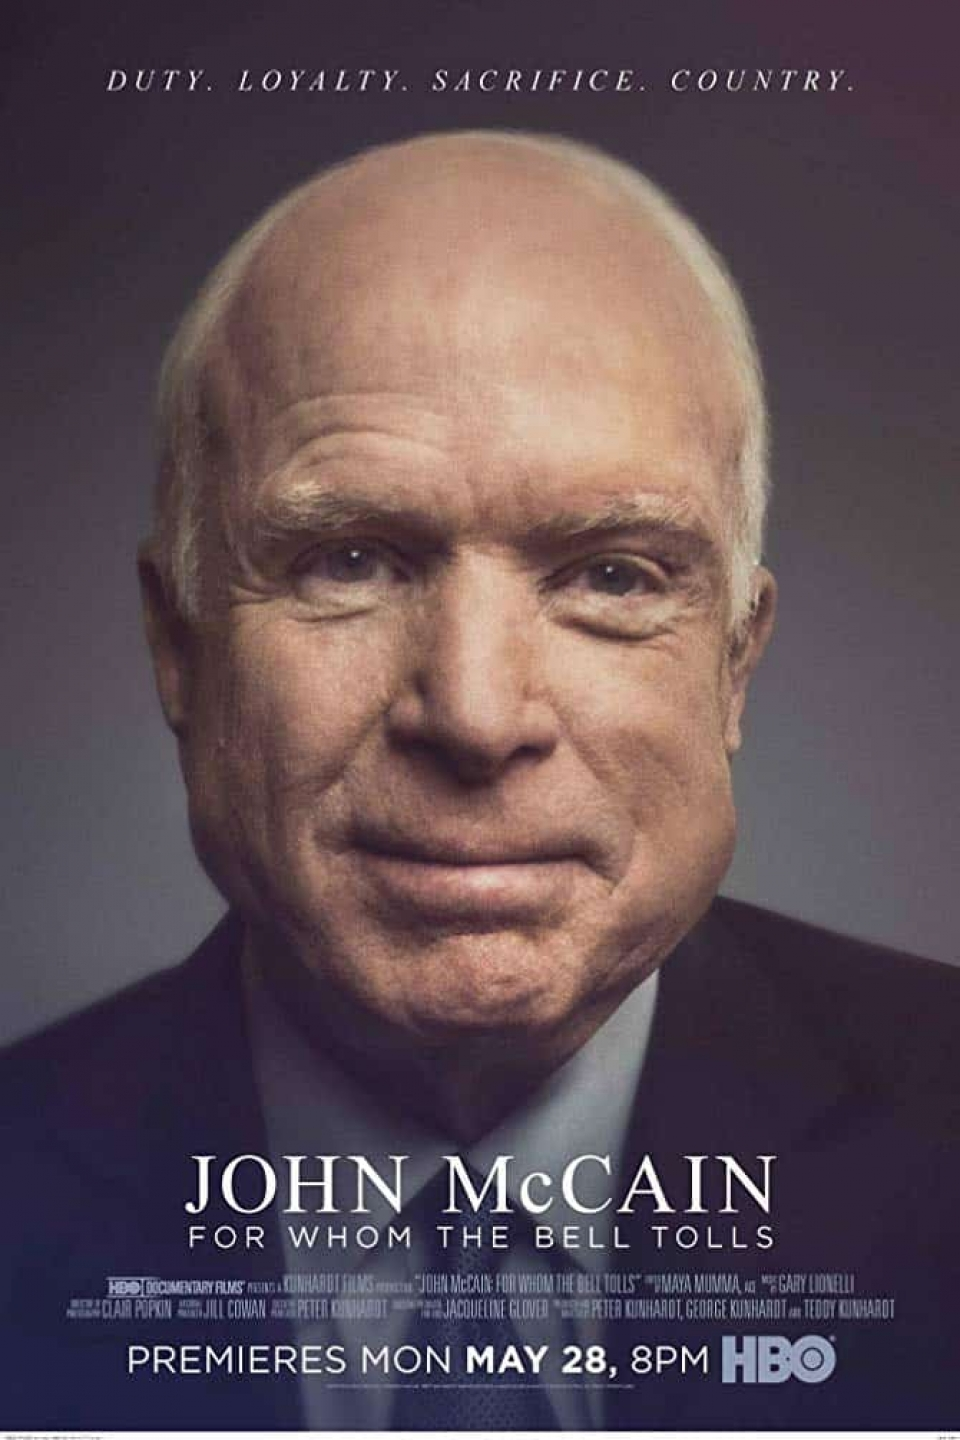 JOHN MCCAIN FOR WHOM THE BELL TOLLS (2018)